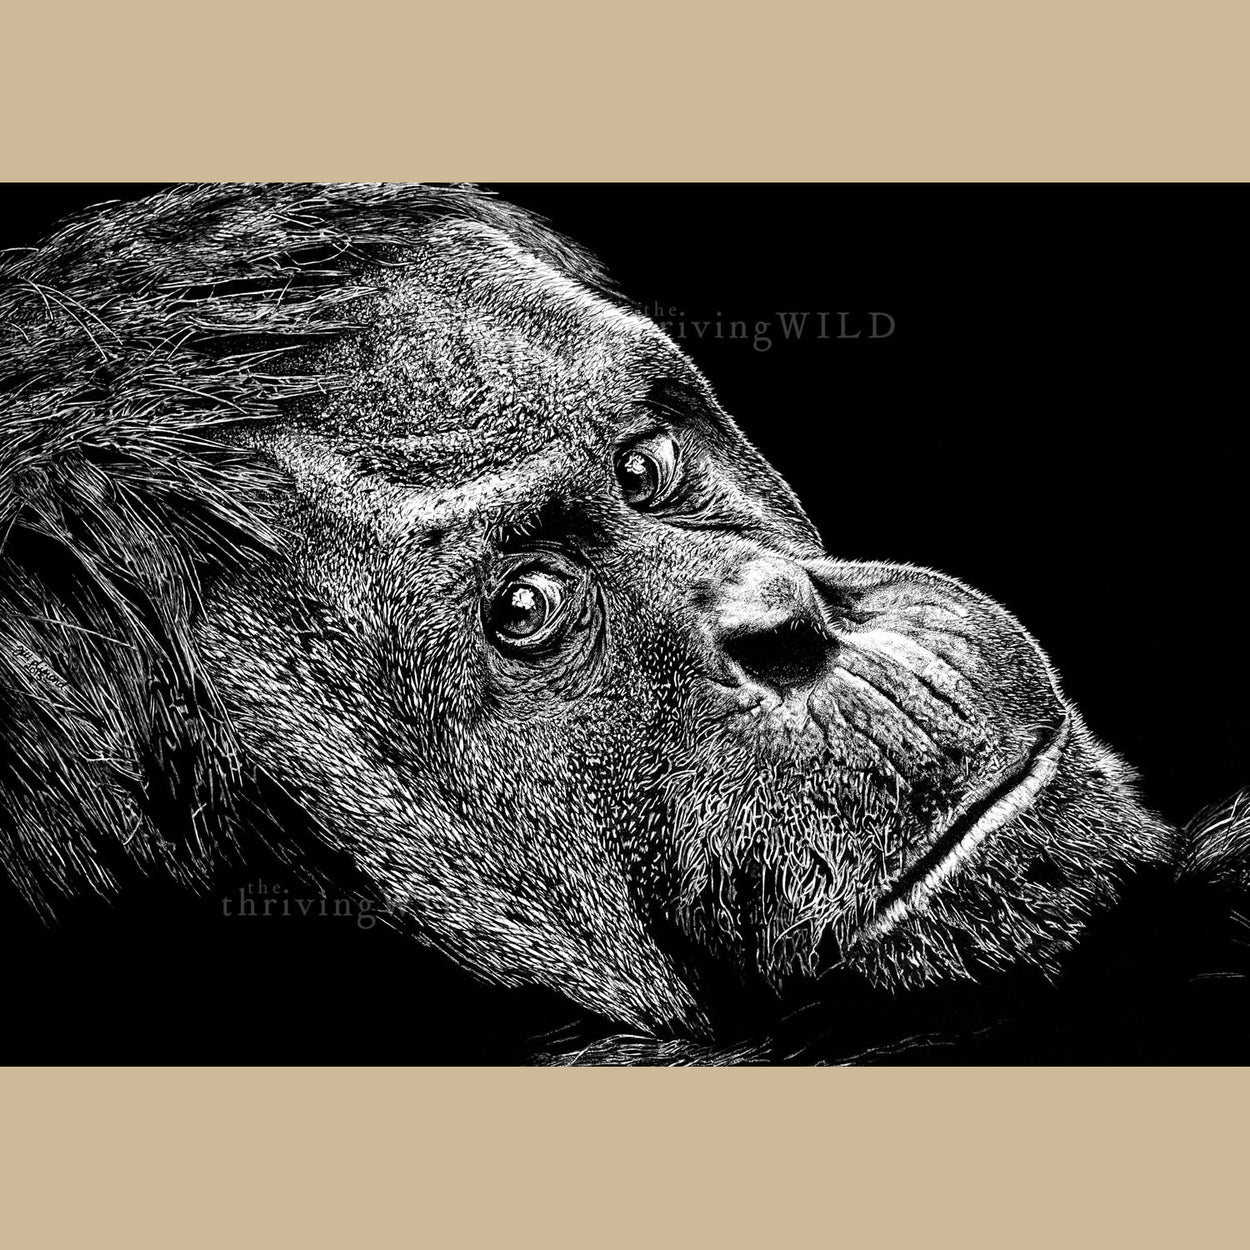 Orangutan Wildlife Pen Drawing - The Thriving Wild